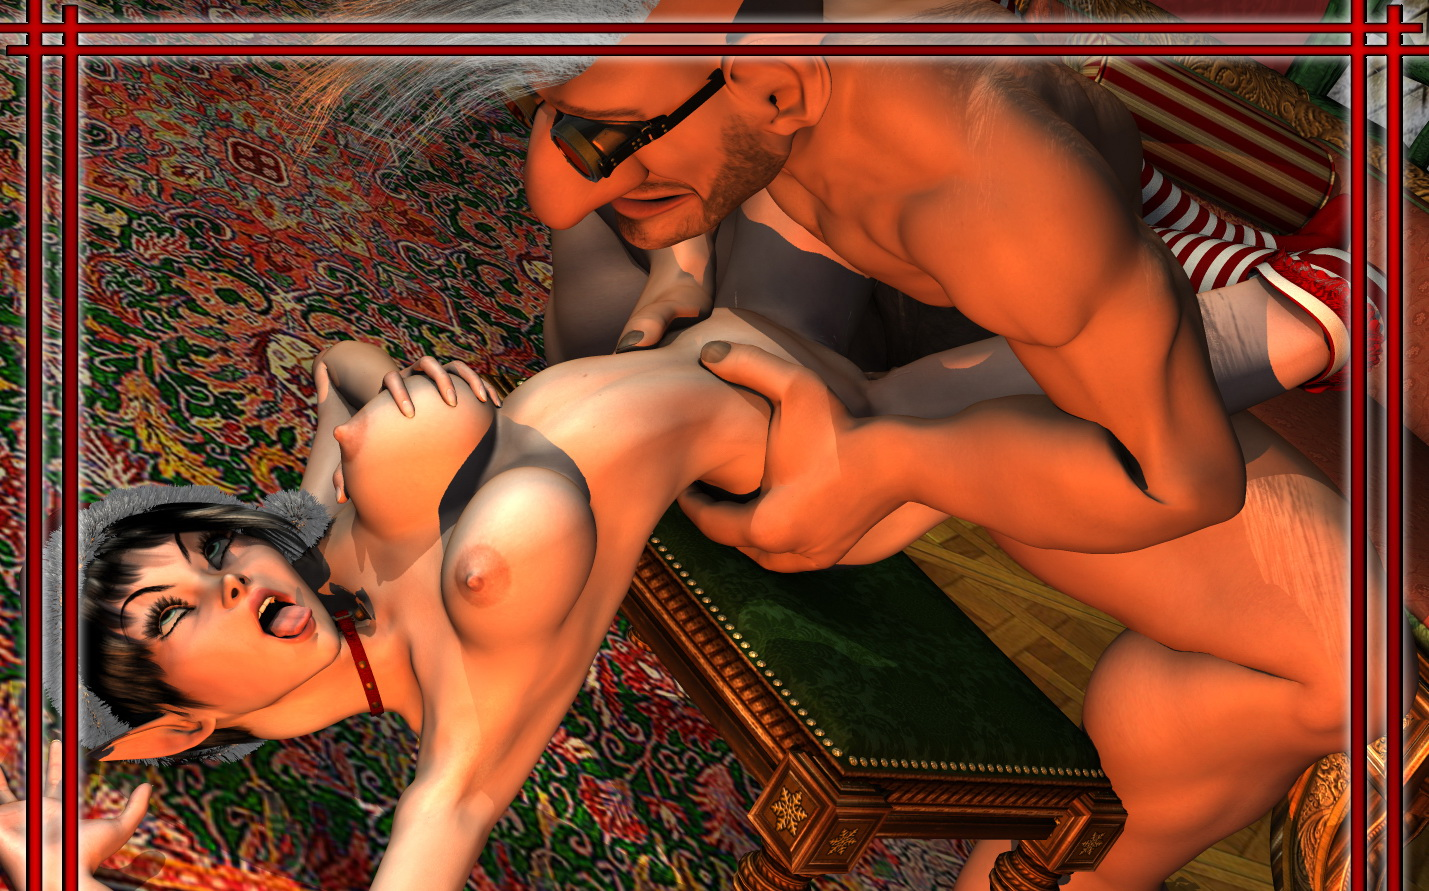 World of porncraft bdsm erotic image